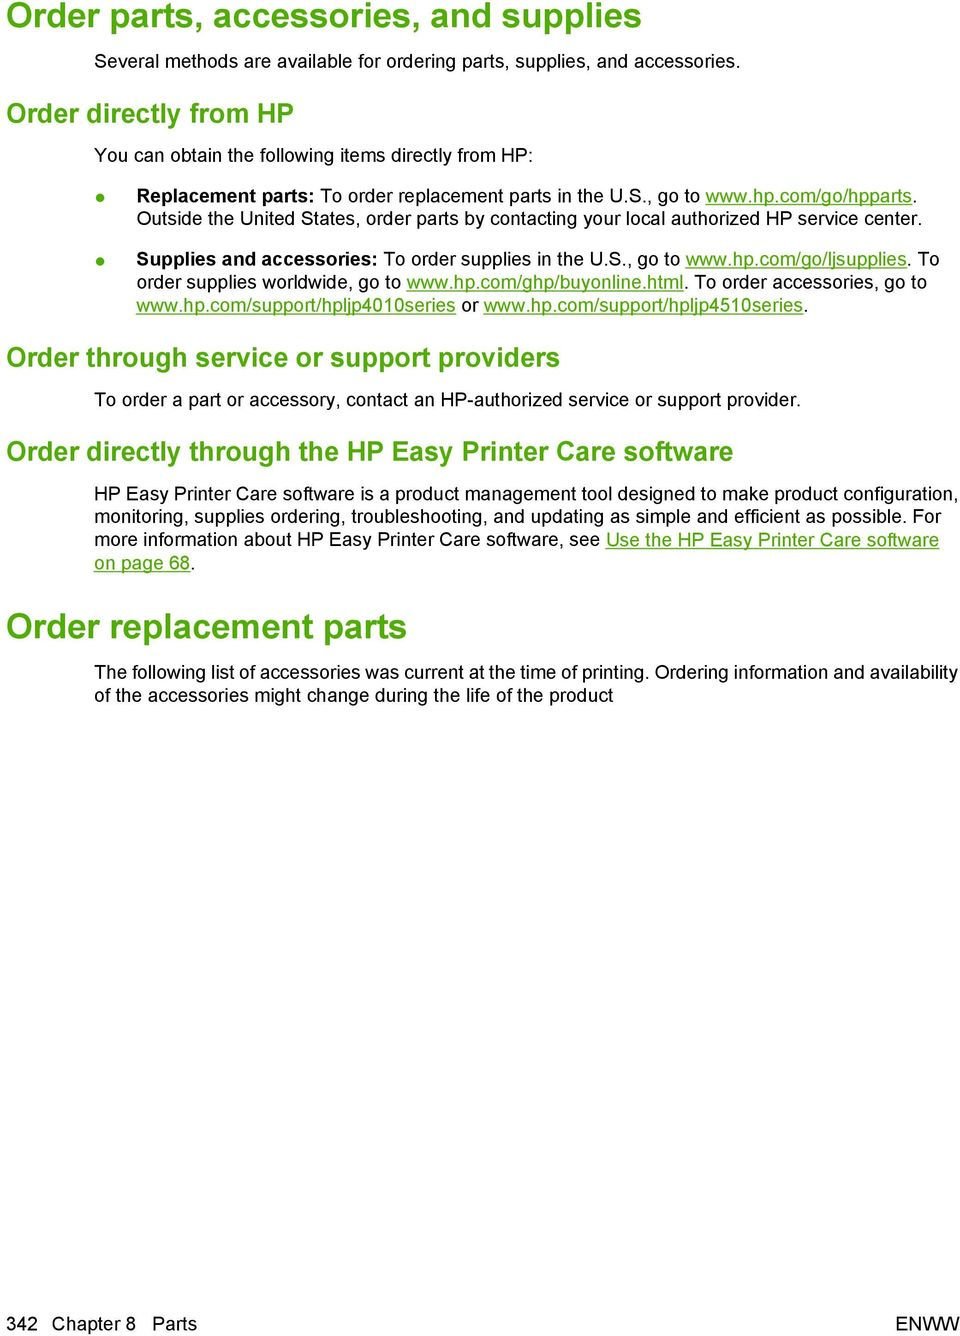 8 Parts  Order parts, accessories, and supplies  Order replacement